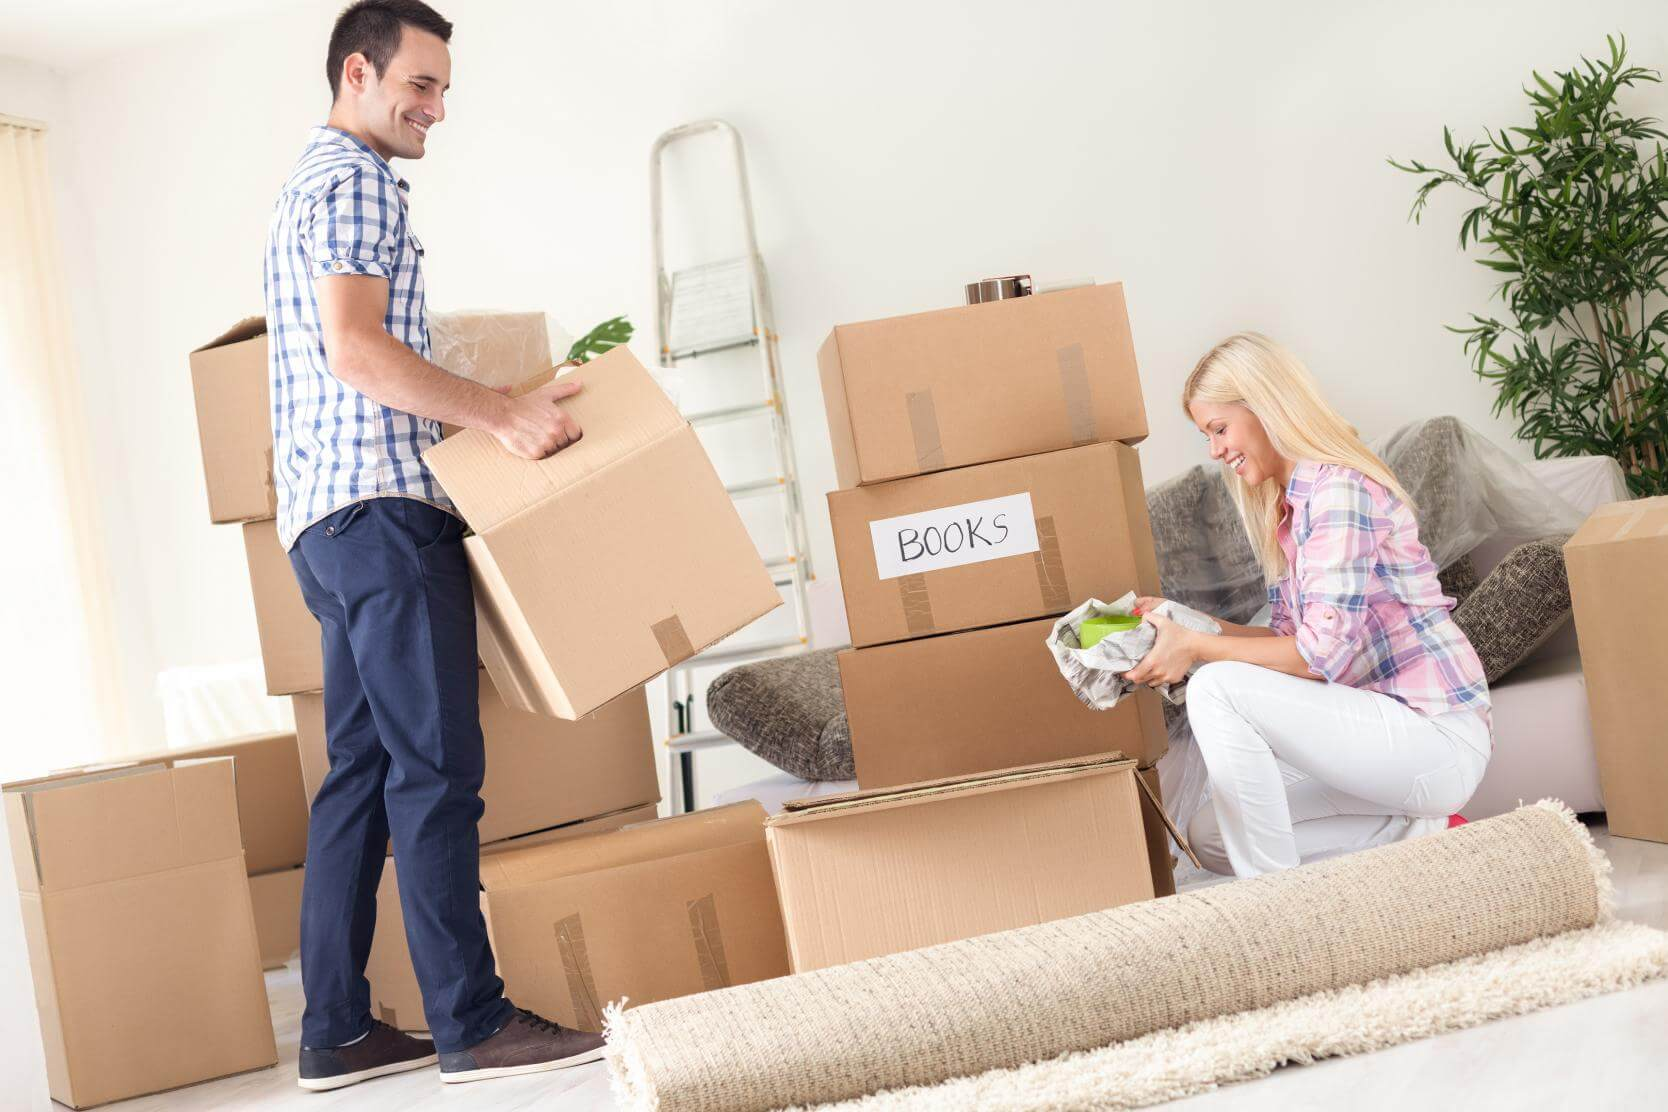 Contact with reliable contractor to get high-quality relocation service